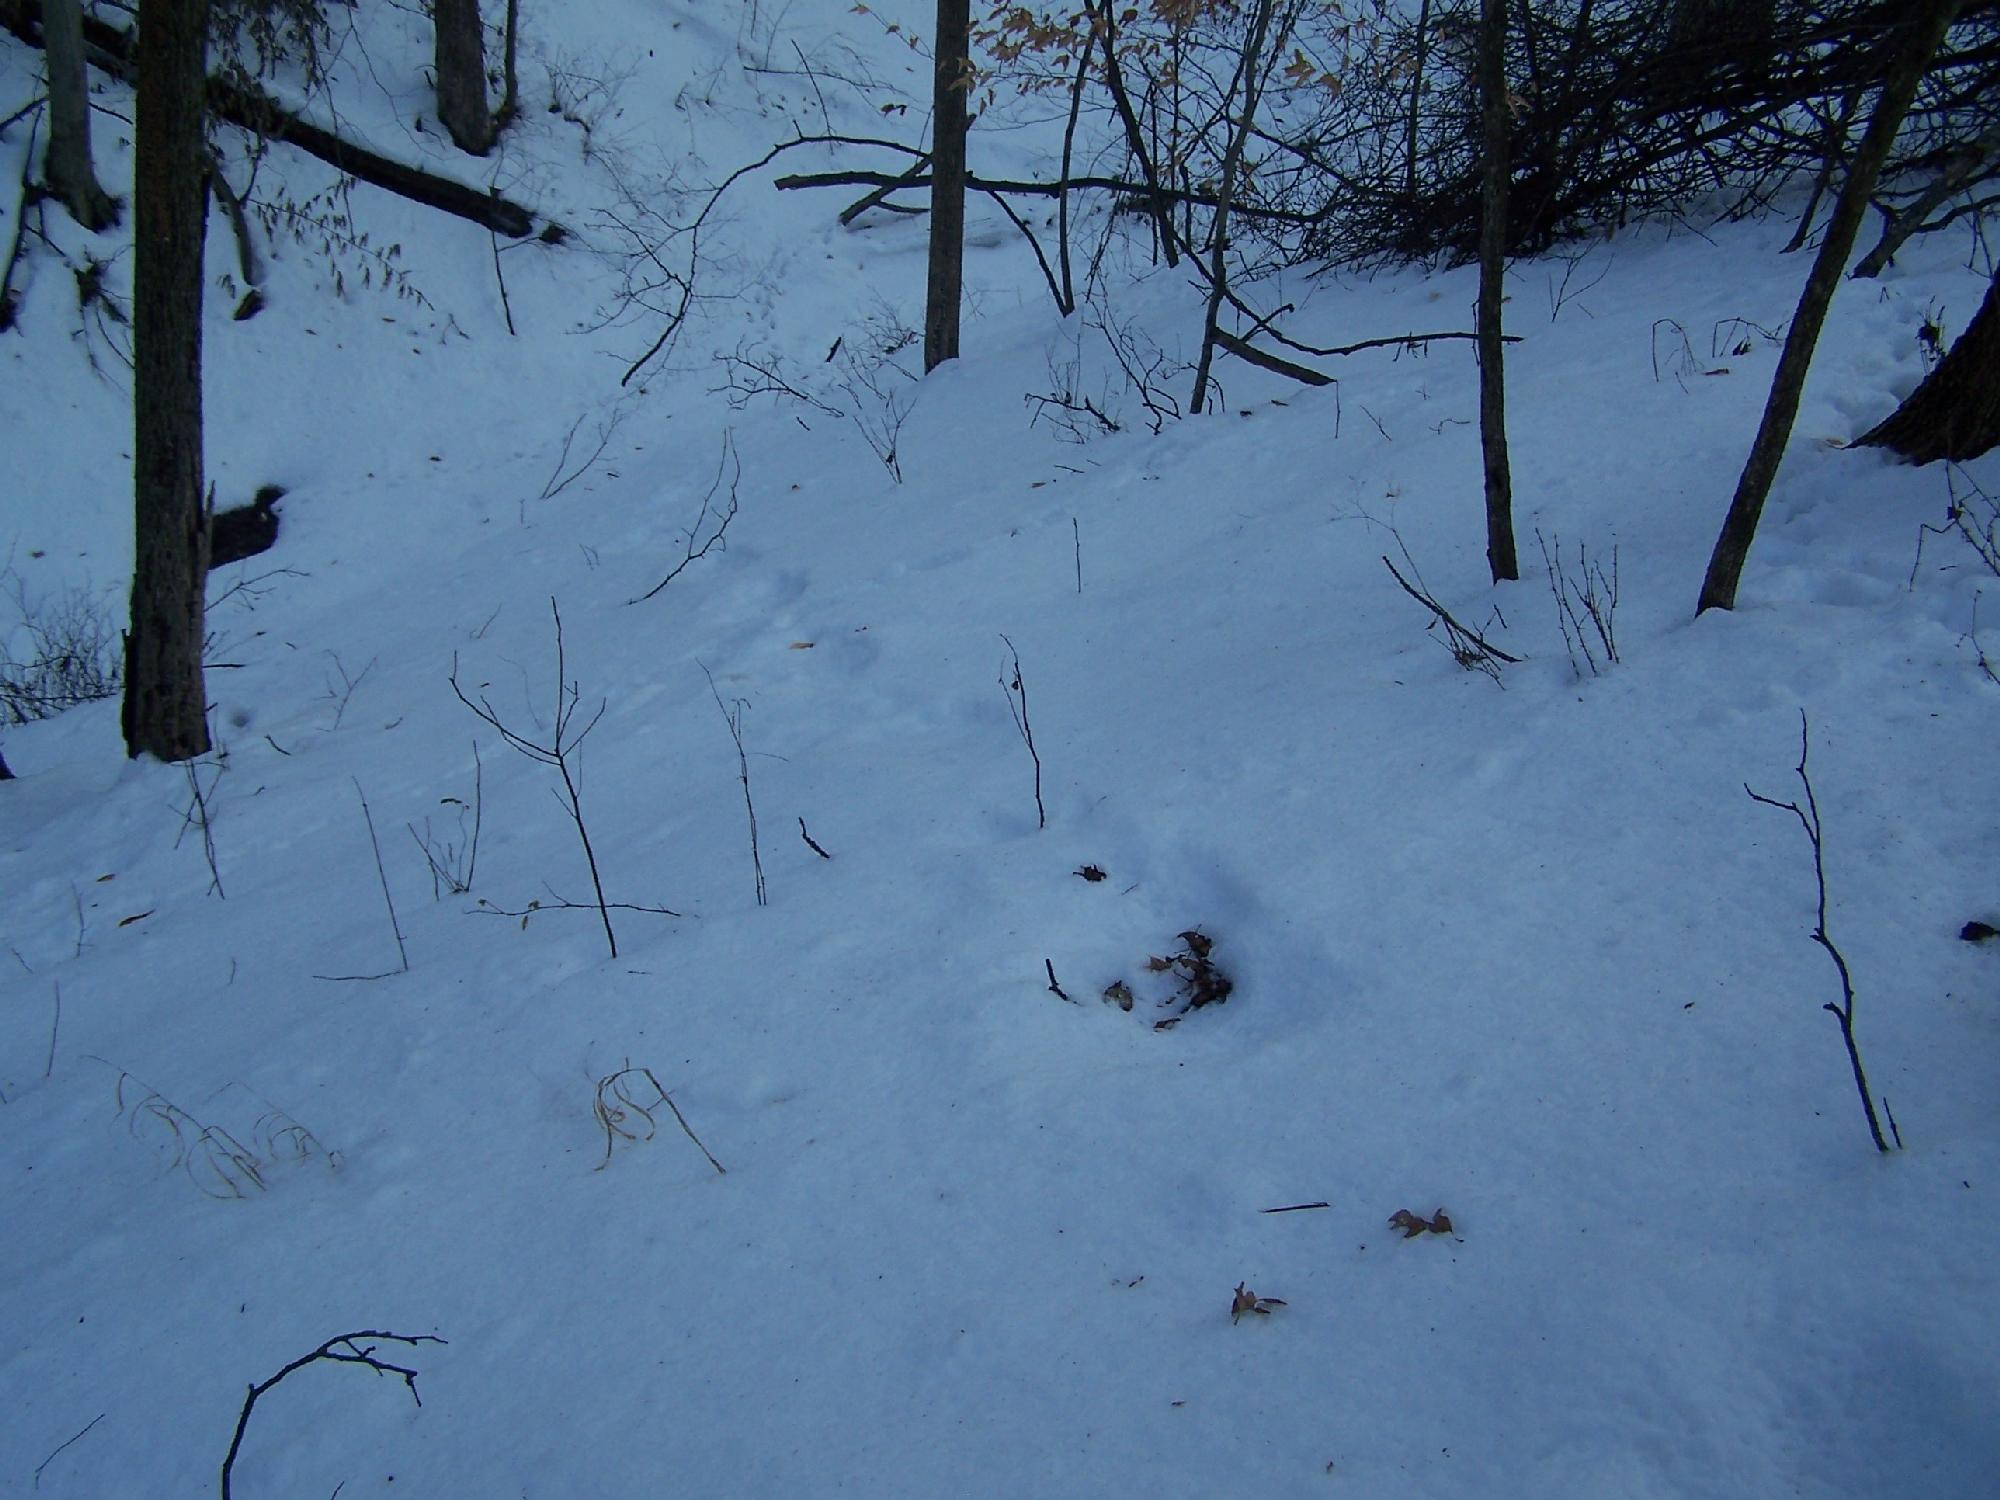 Down into the ravine, another angle.